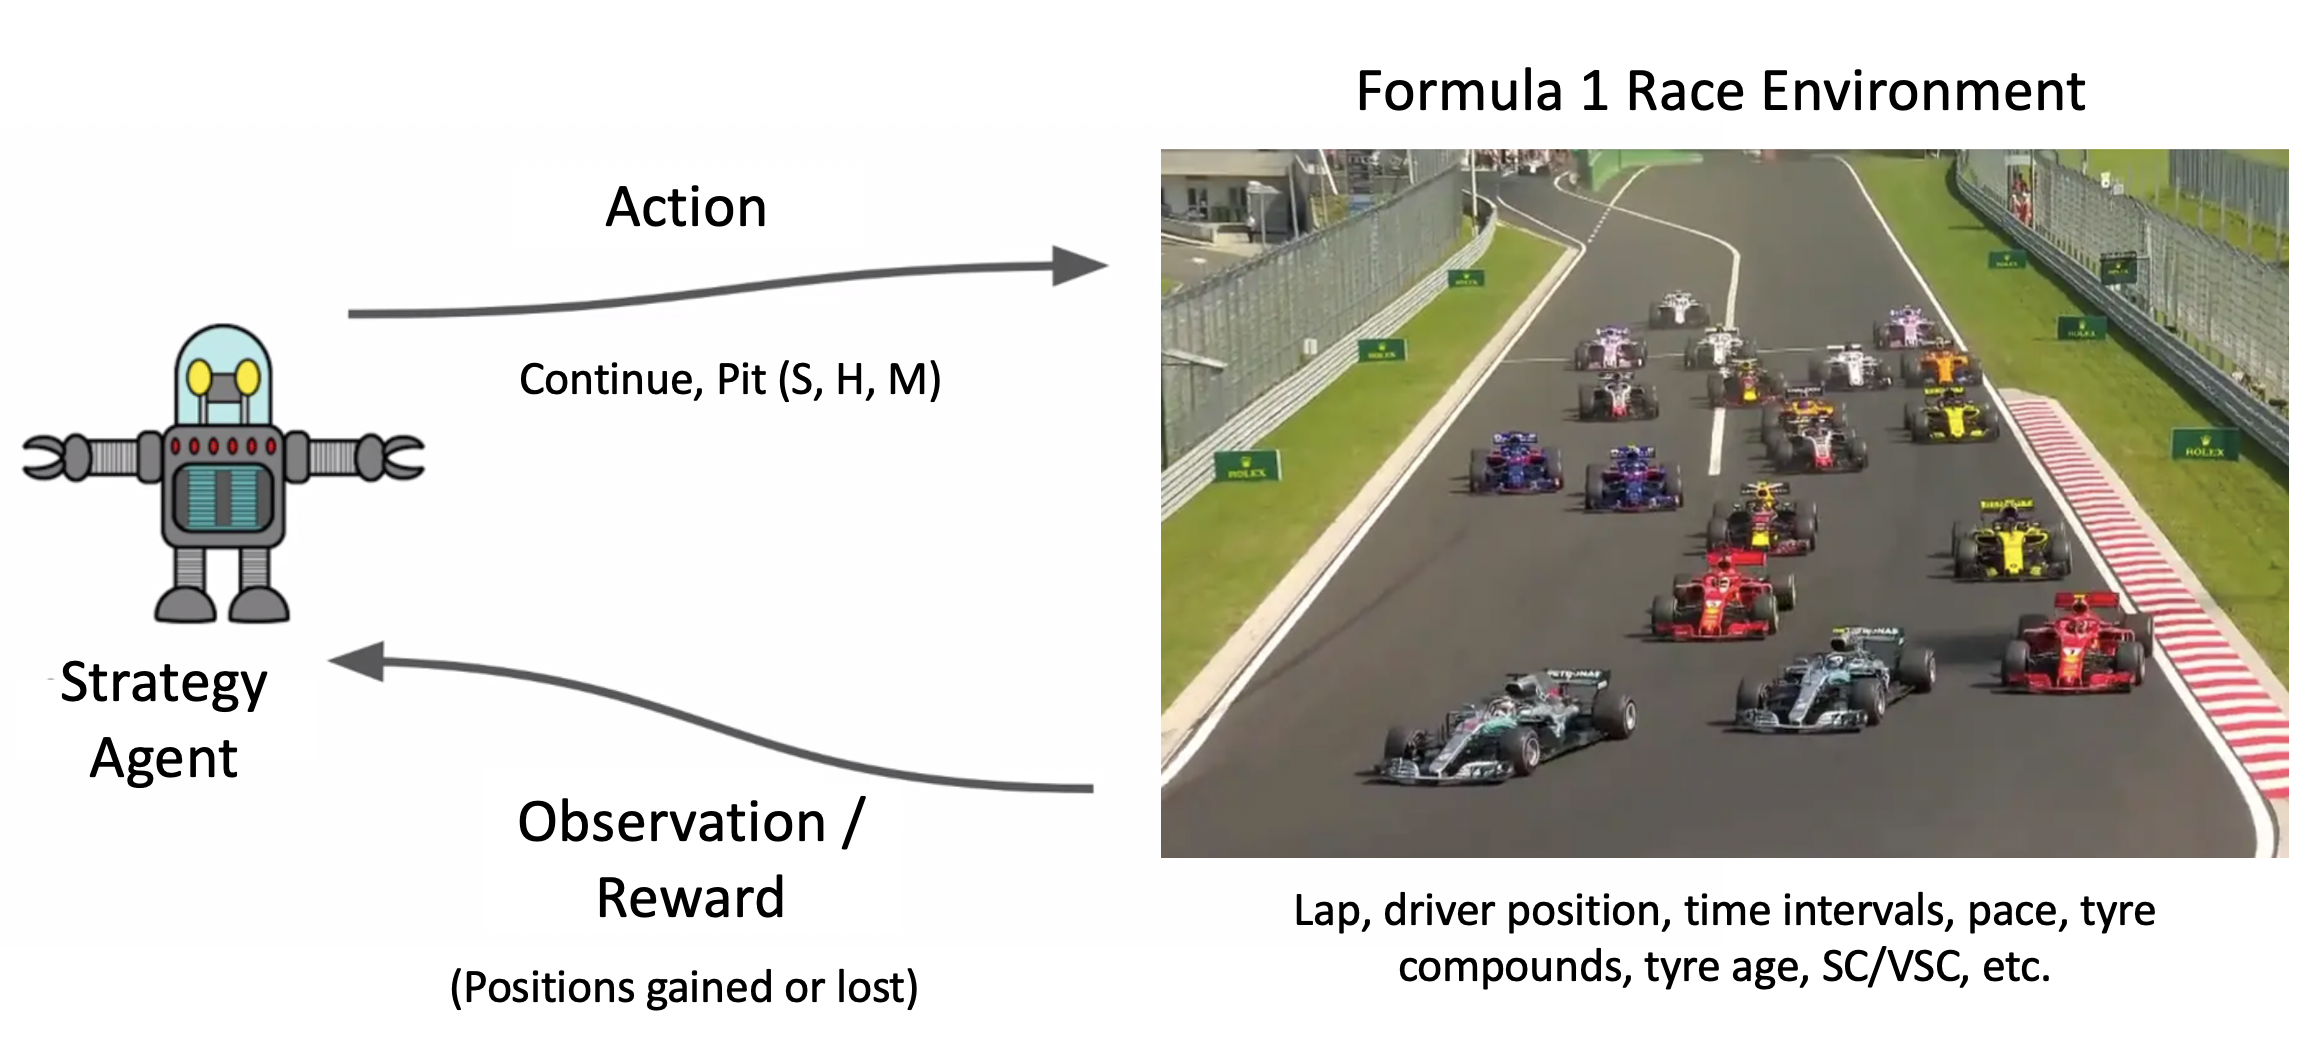 Reinforcement Learning For Formula 1 Race Strategy By Ashref Maiza Towards Data Science